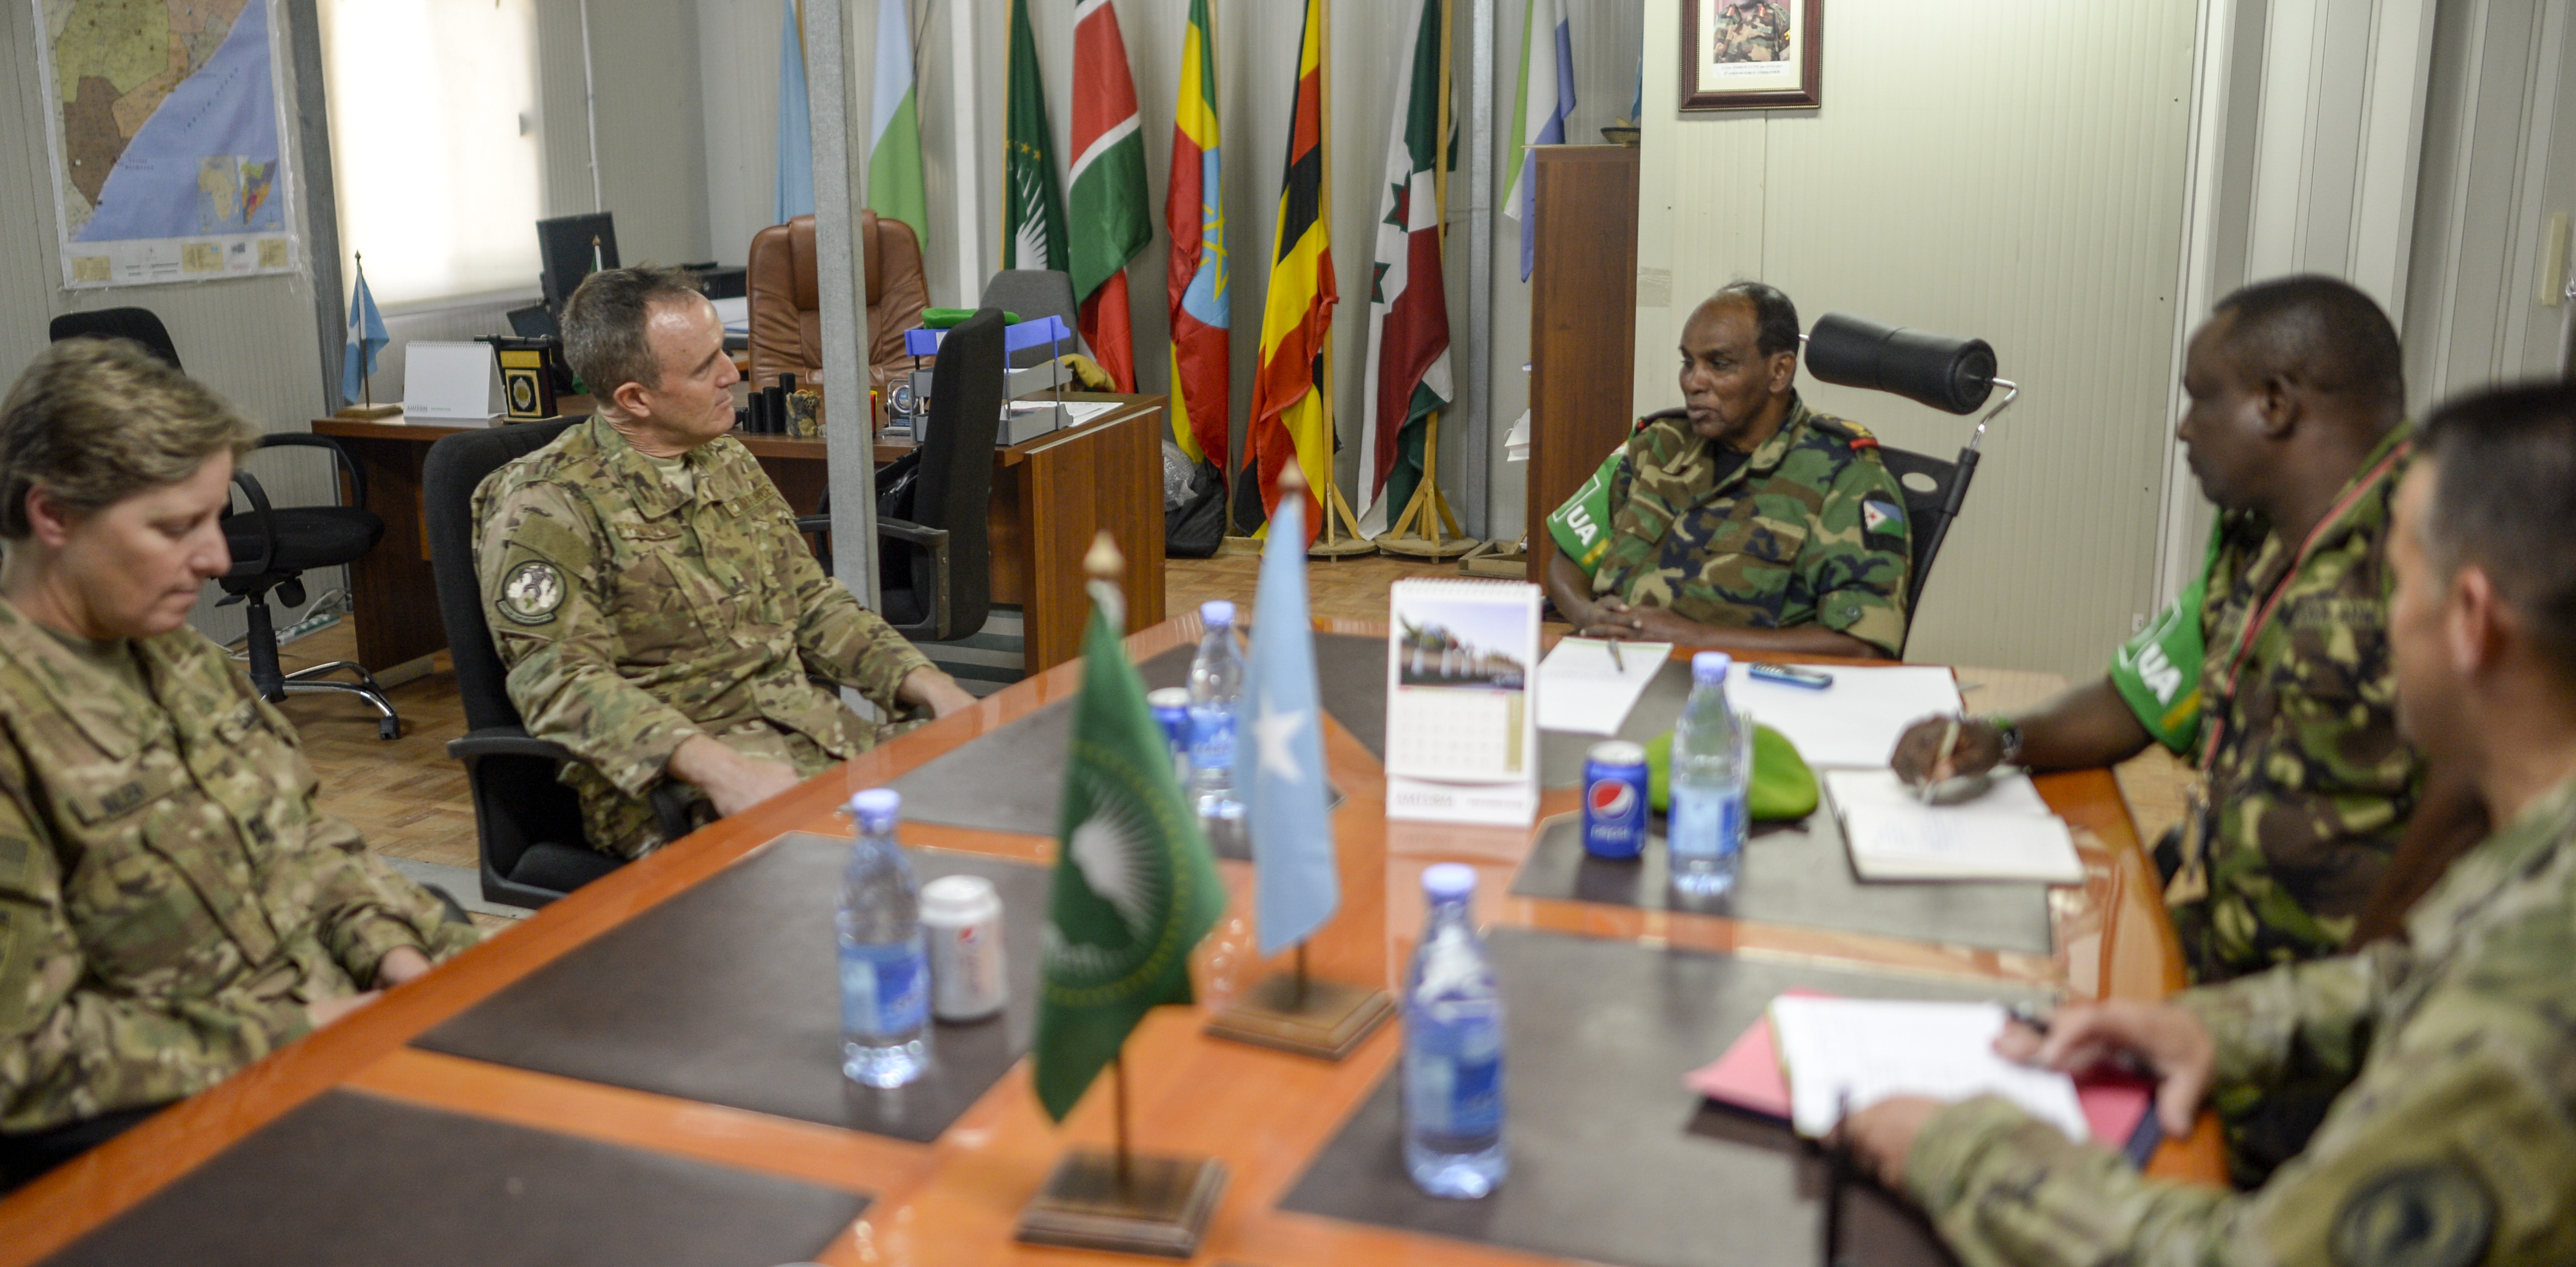 U.S. Air Force Brig. Gen. Phil Purcell, Combined Joint Task Force-Horn of Africa (CJTF-HOA) deputy commander, discusses the current status of Somalia with Djibouti Armed Forces Lt. Gen. Osman Noor Soubagleh, force commander of the African Union Mission in Somalia (AMISOM), and other key members of AMISOM, in Mogadishu, Somalia Mar. 15, 2017.  The meeting helped to coordinate CJTF-HOA, the United Nations, European Union, the AMISOM and other international partner's efforts to stabilize Somalia and the surrounding regions. (U.S. Air National Guard photo by Christian M. Jadot)